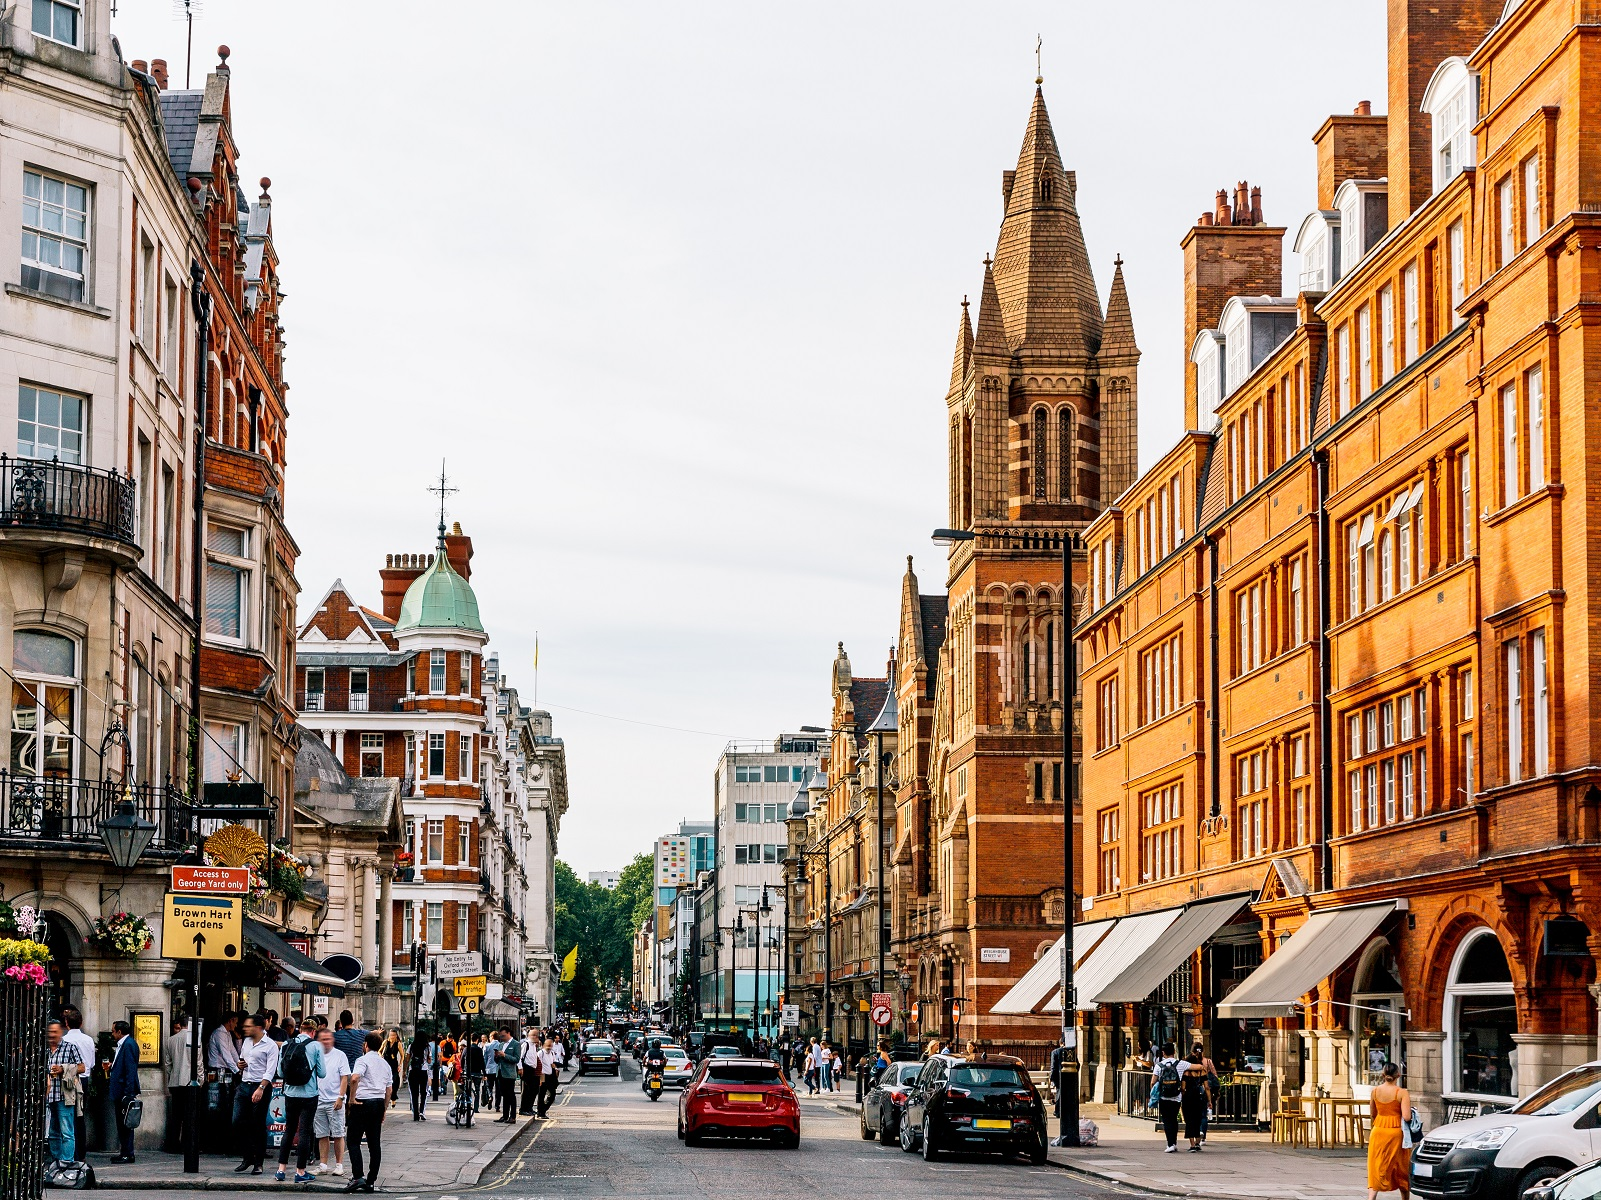 Street in Mayfair showcasing London architecture